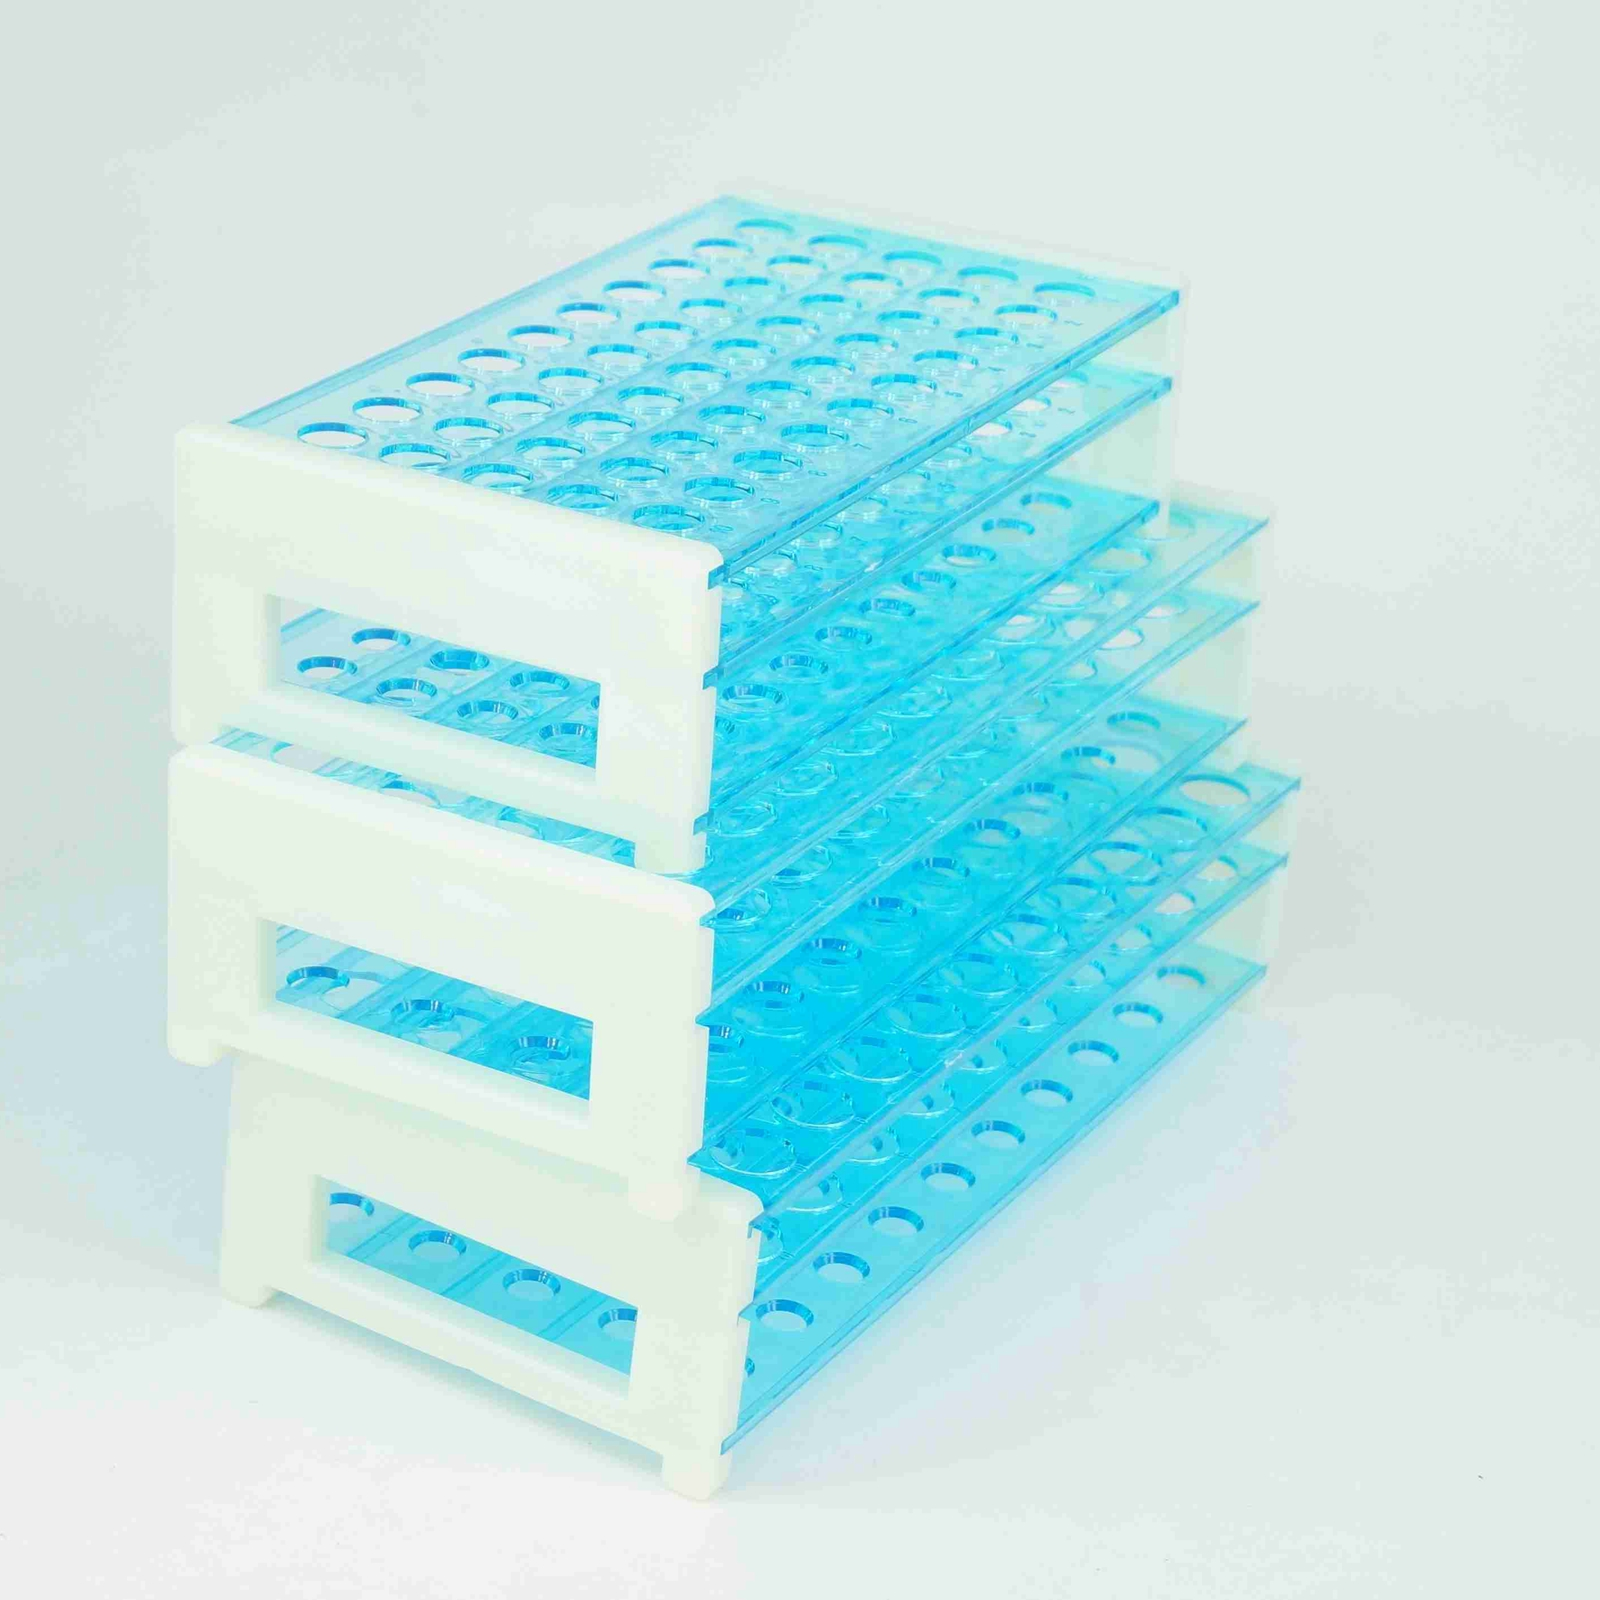 13/16/18mm Diameter 50/50/40 Holes Plastic Double Deck Test Tube Stand Rack